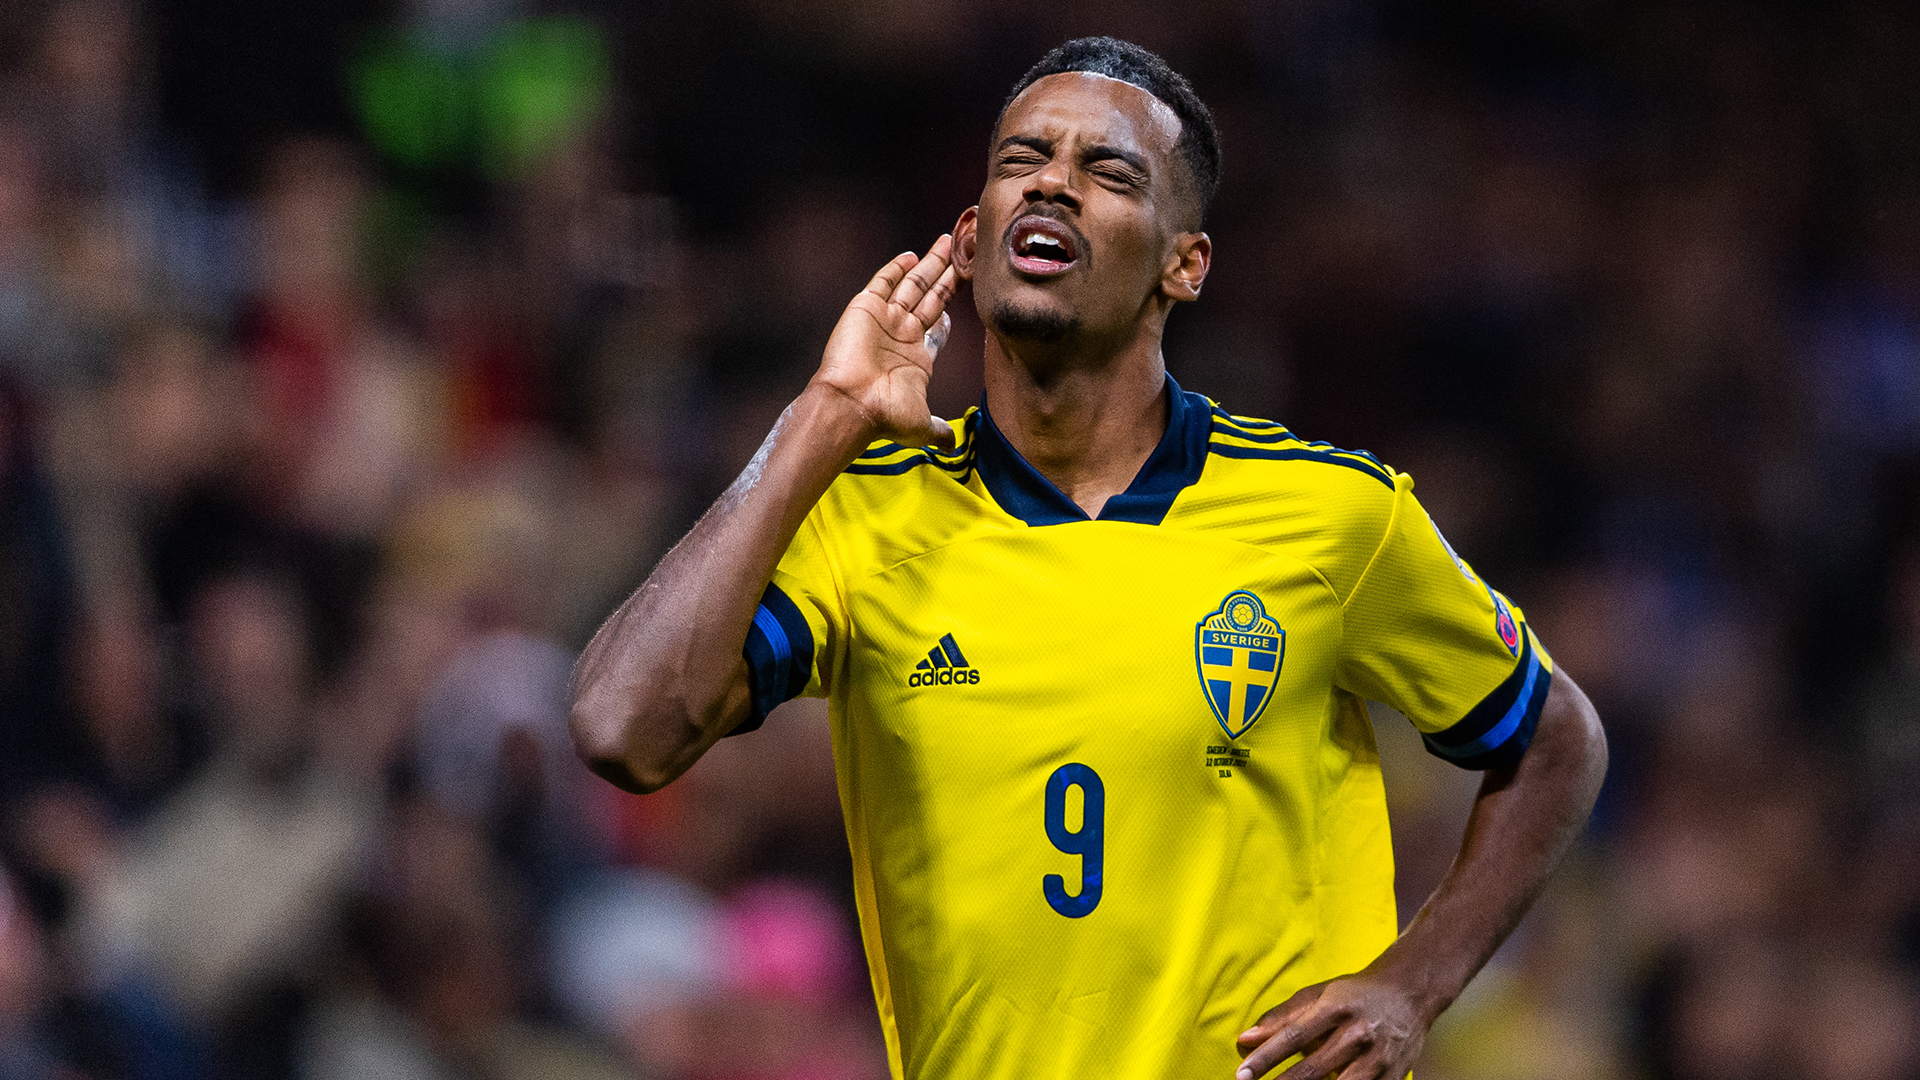 Sweden beat Greece 2-0 to pile pressure on La Roja in World Cup qualifying campaign